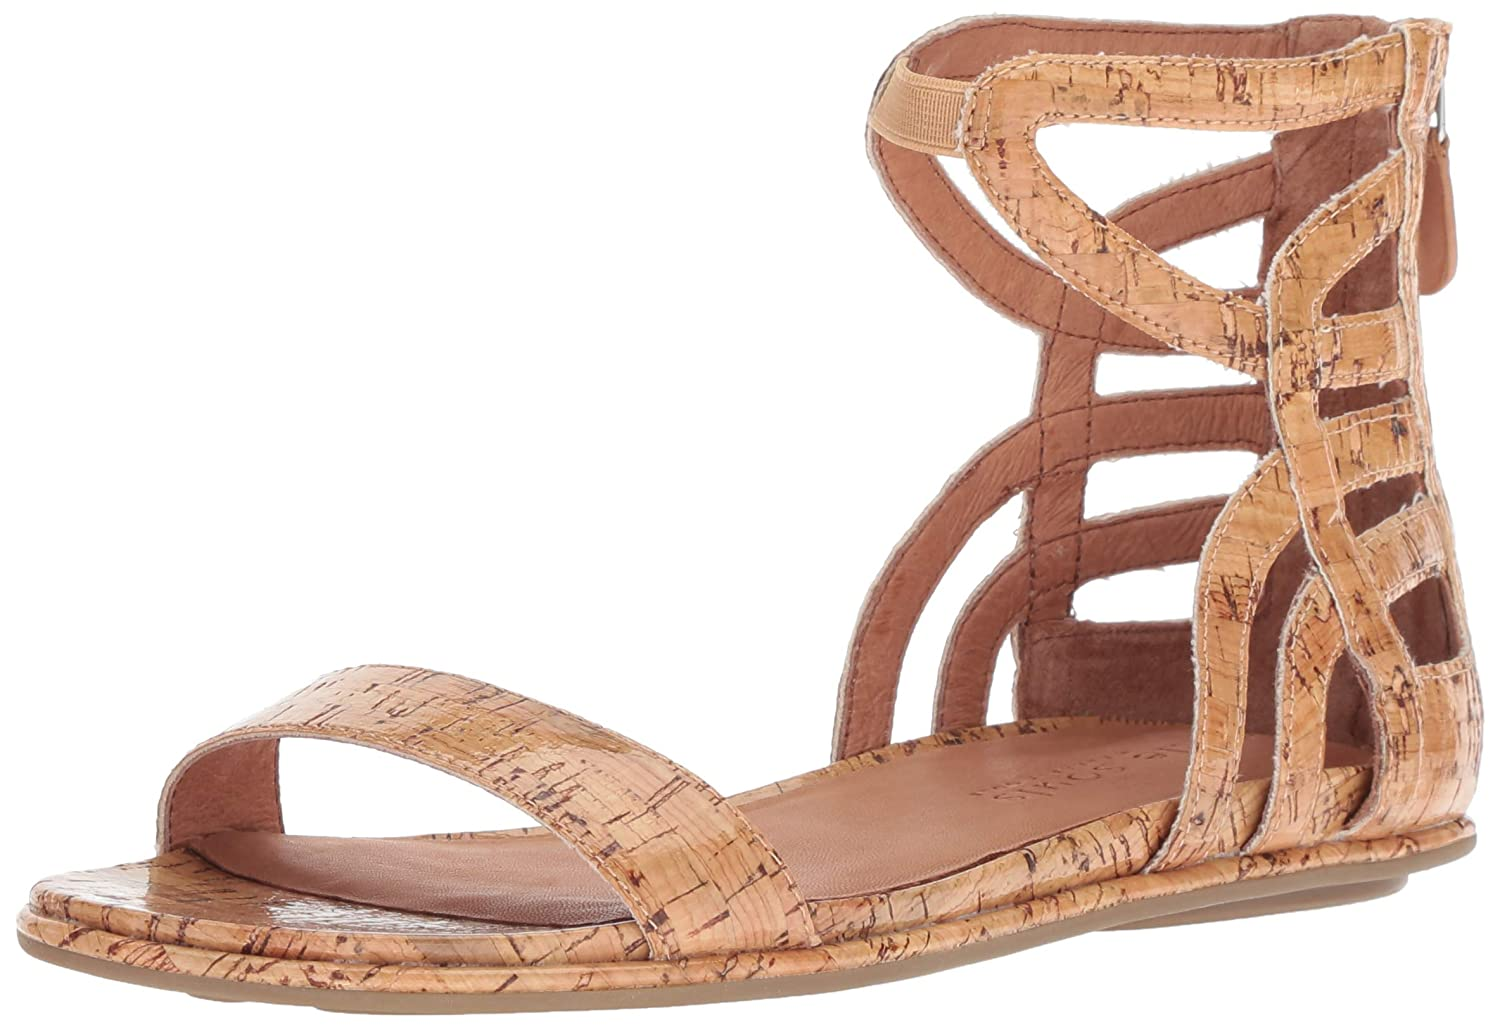 9741c35b2ce Amazon.com  Gentle Souls Women s Larisa Flat Sandal with Gladiator Ankle  Straps  Shoes